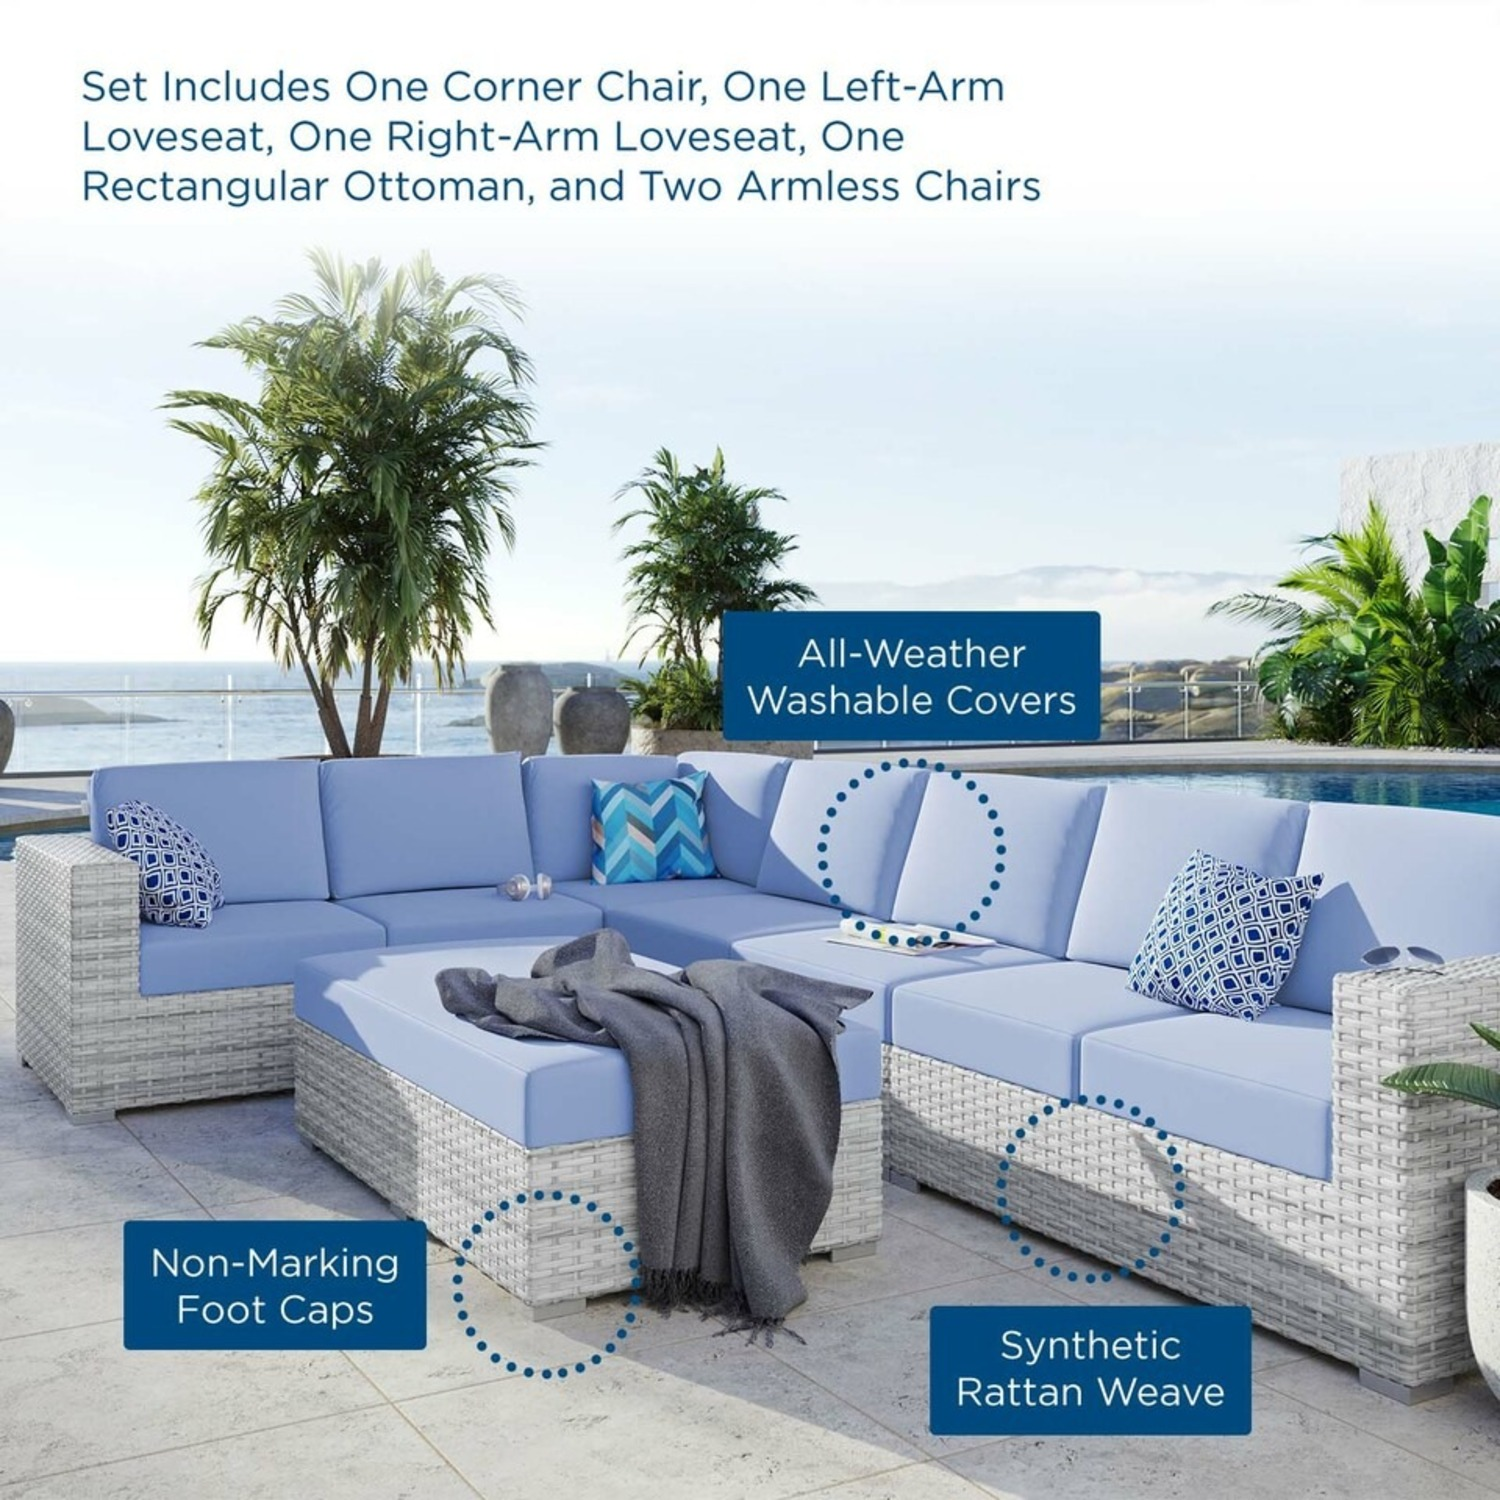 6-Piece Outdoor Patio Sectional In Light Blue Seat - image-15